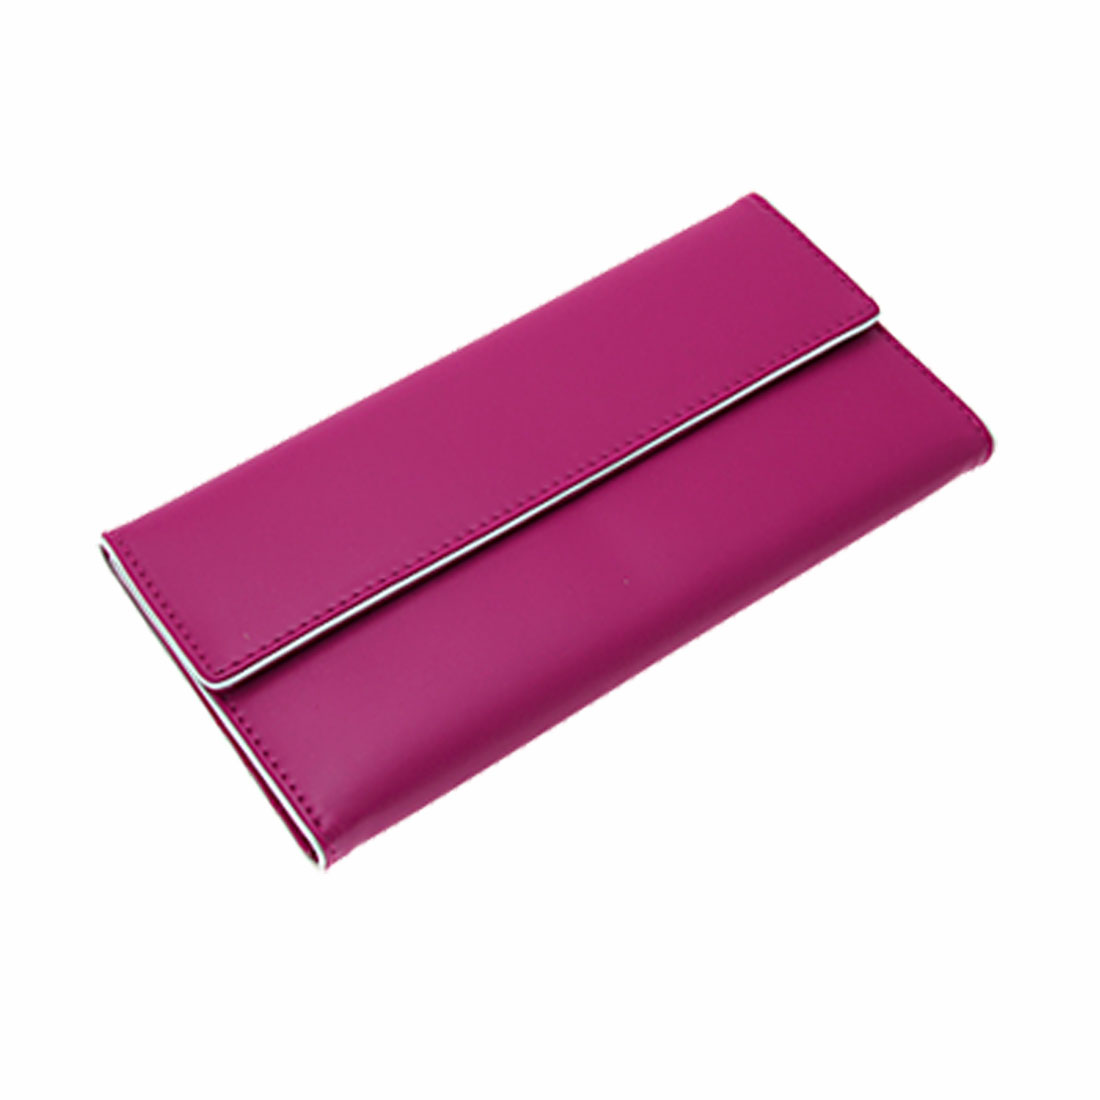 7.25 x 3.7 Inch Faux Leather Clip Button Zip Lady Wallet Purse Magenta